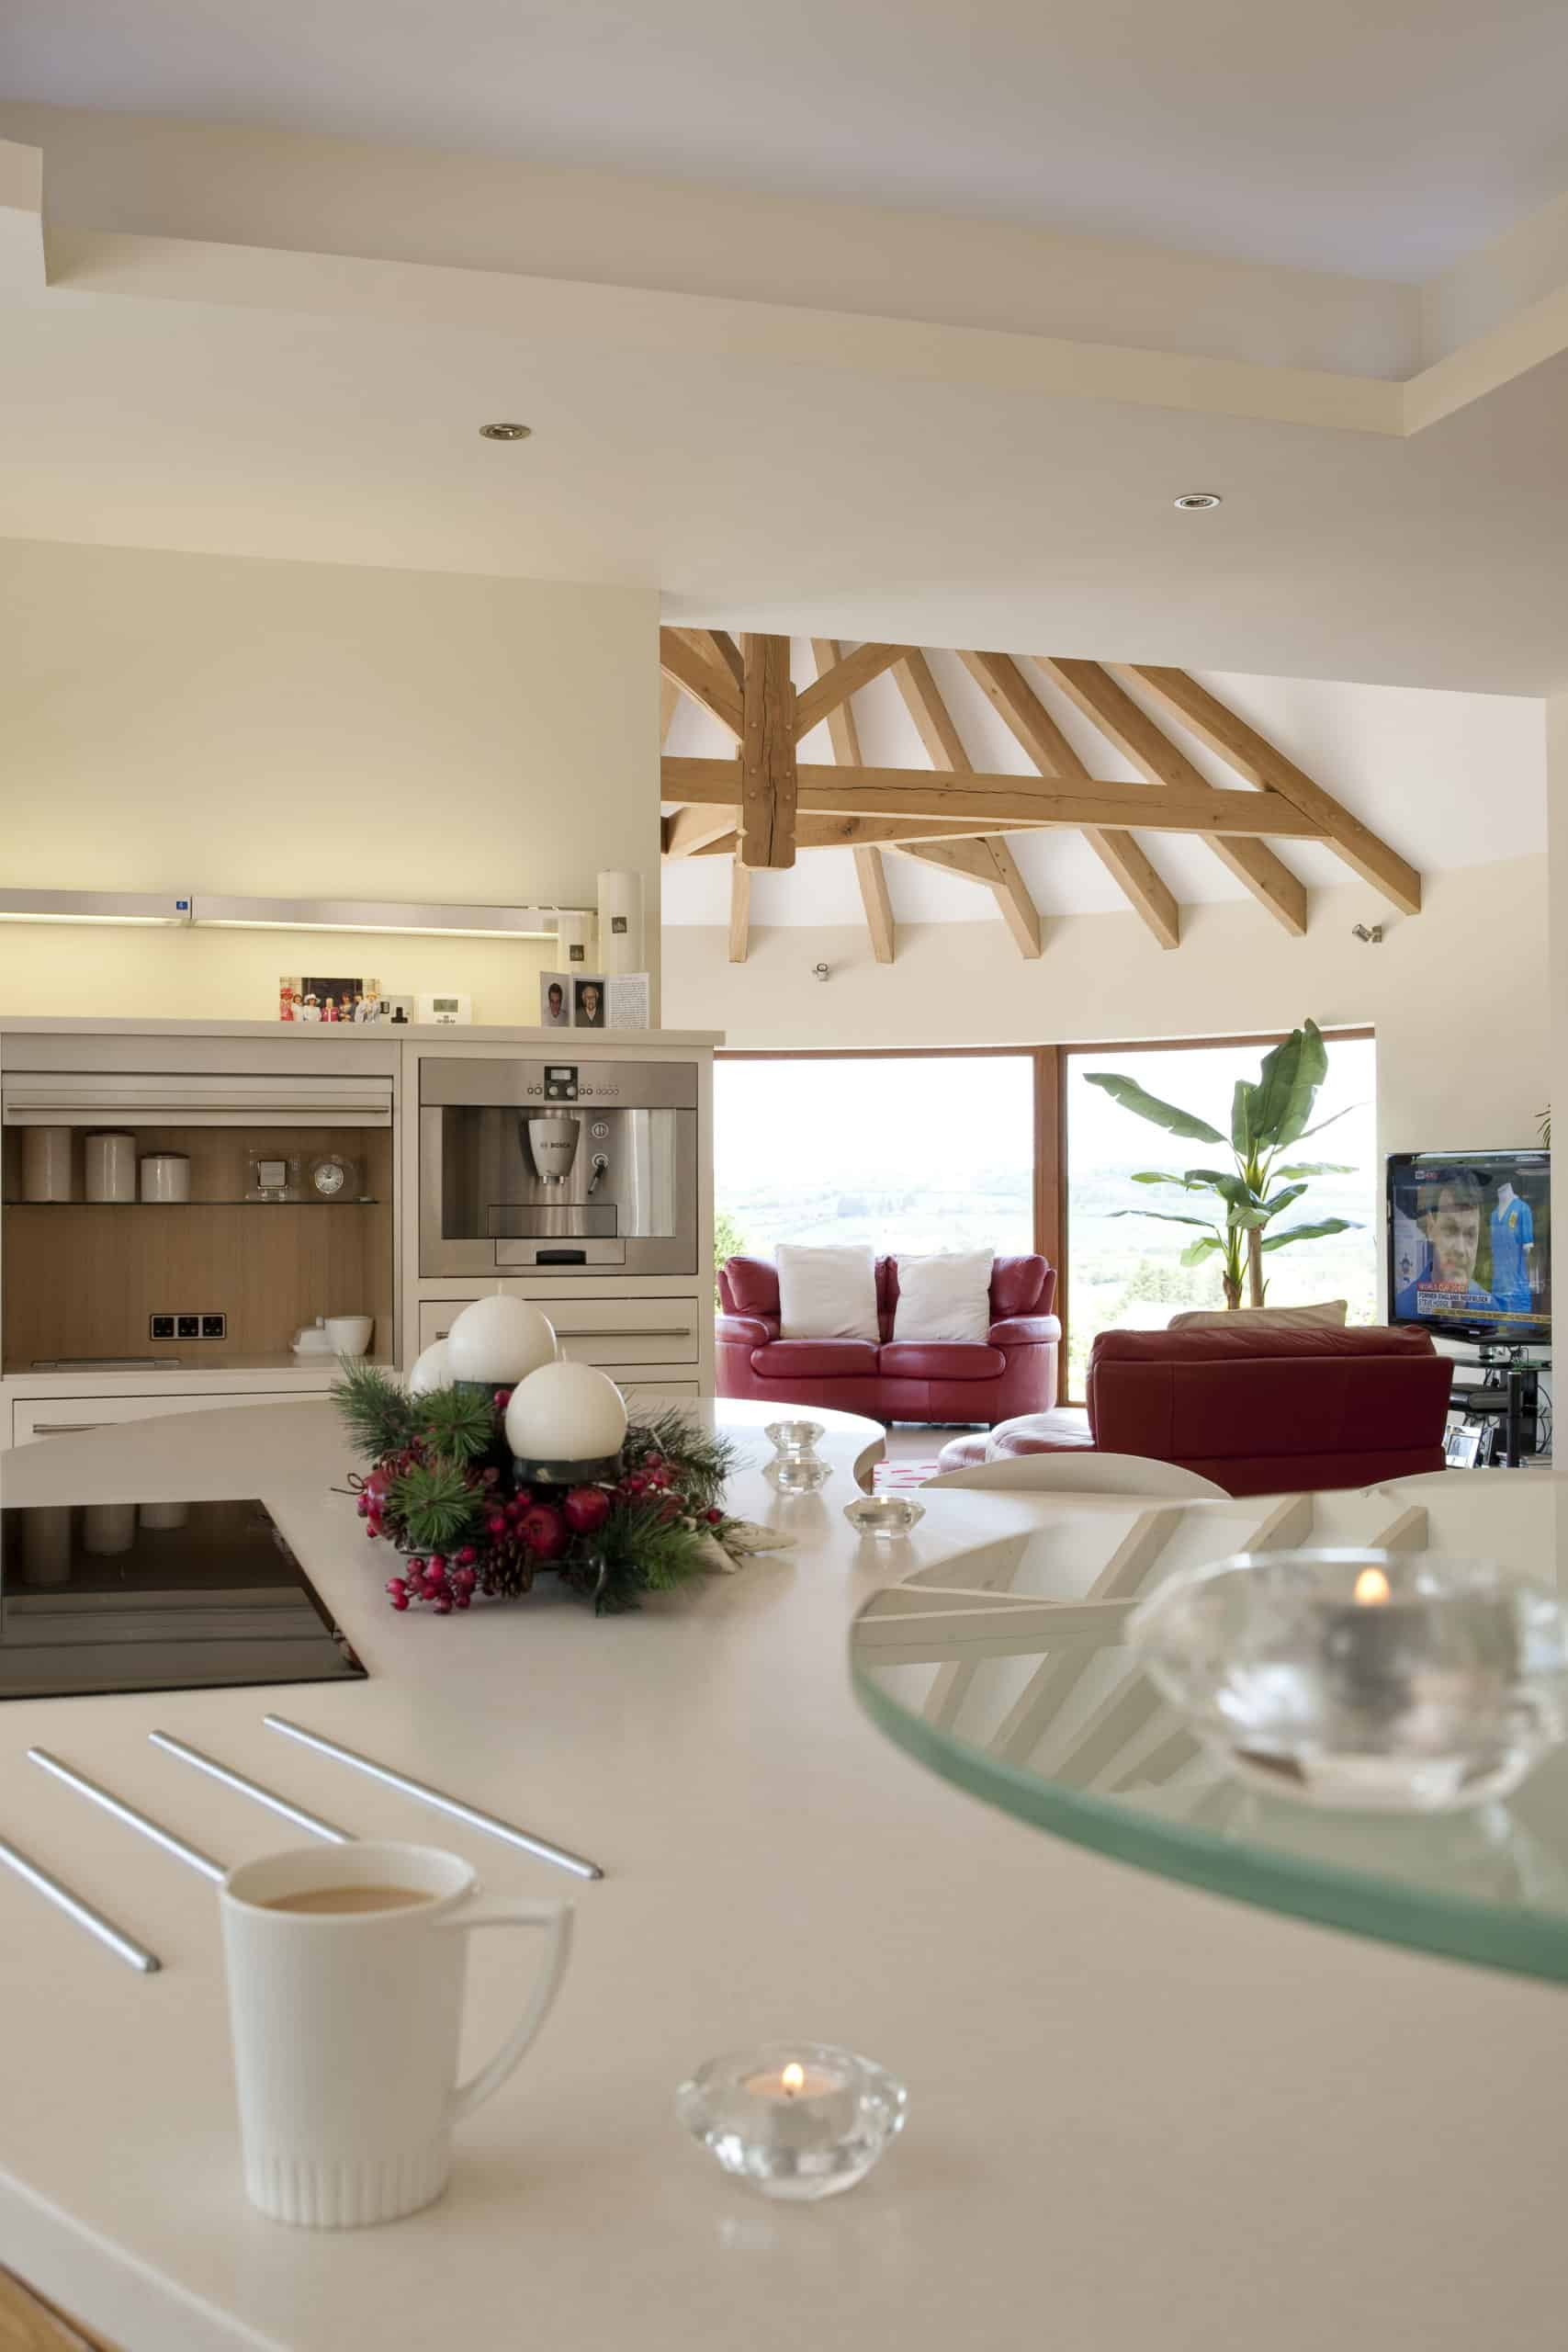 Mullen Extension - View from kitchen island